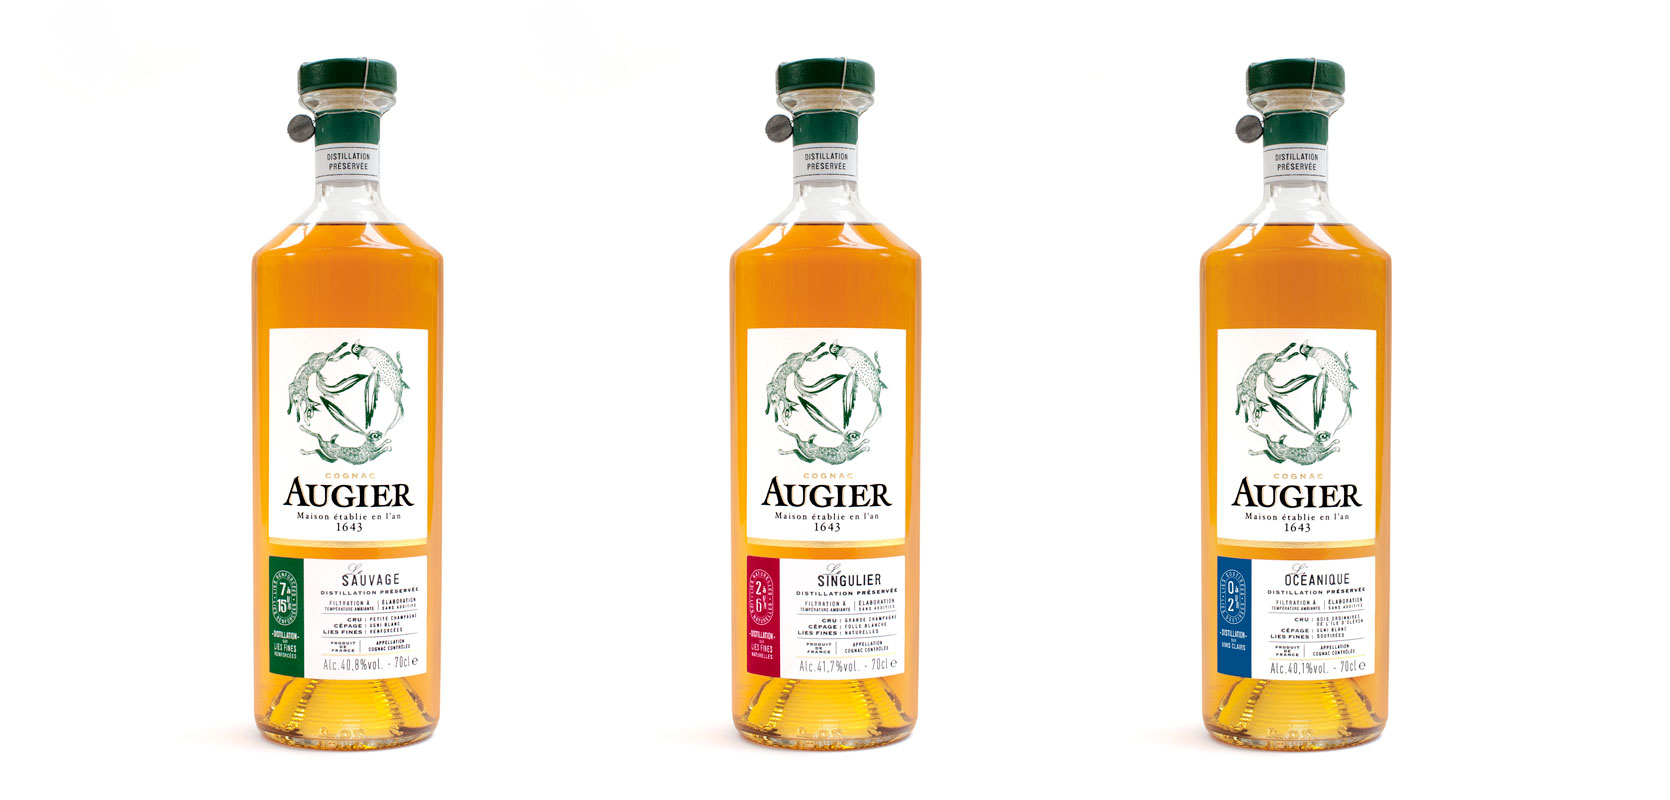 Cognac Augier: New Look, New Home at Pernod Ricard